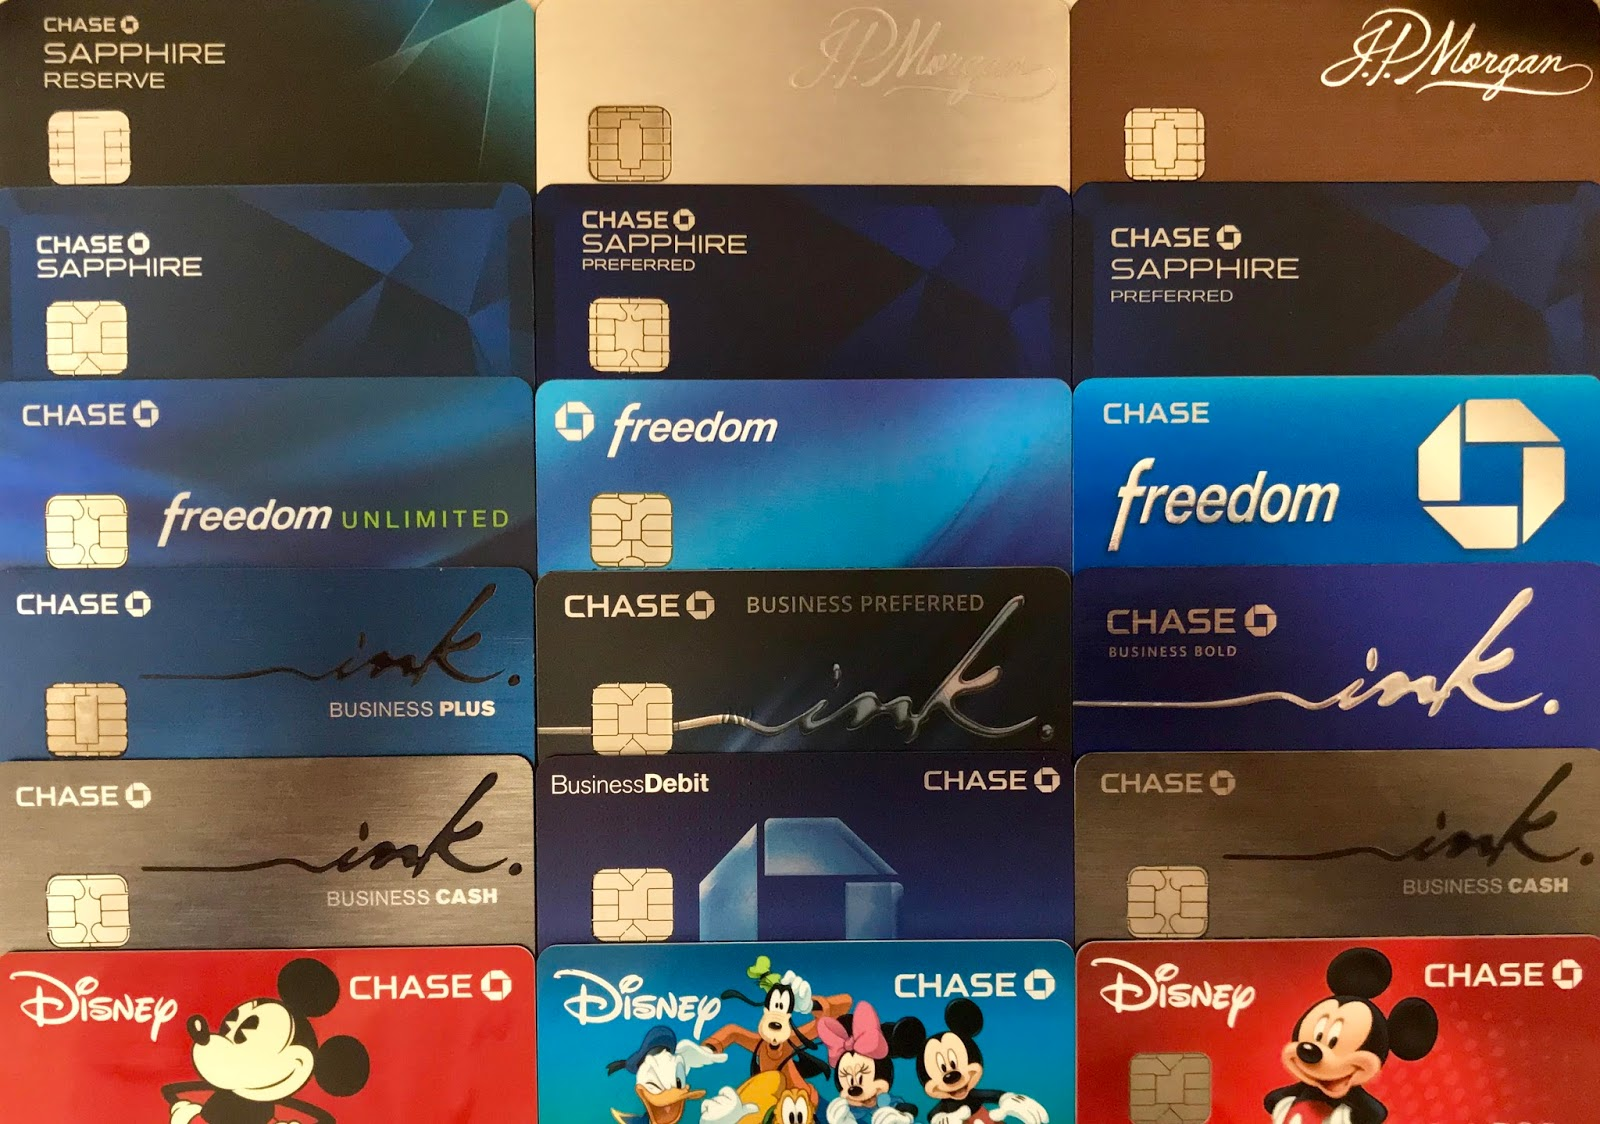 Relentless Financial Improvement: My Chase Ultimate Rewards collection